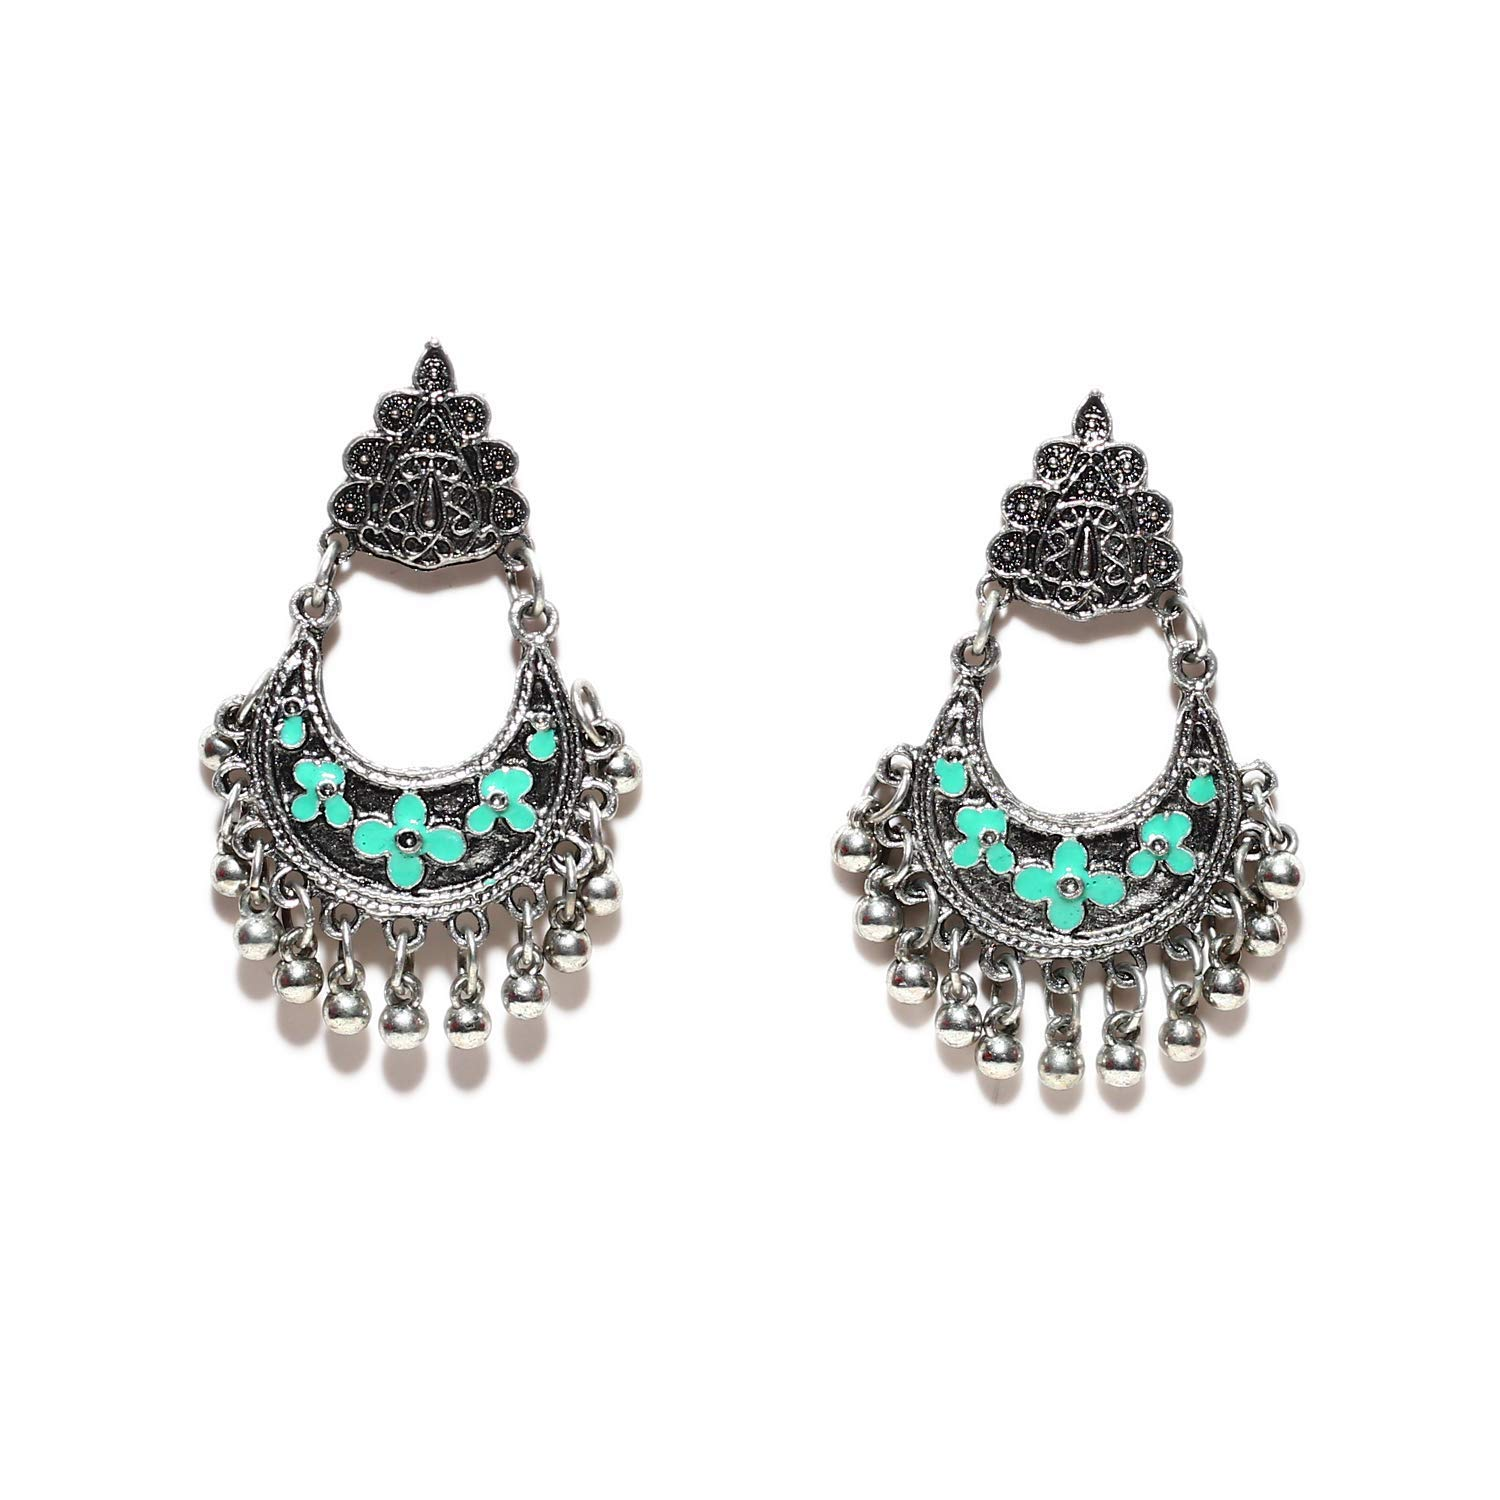 bede599ae Get Quotations · Indian Oxidized Jhumki Ethnic Bohemian Black Metal Silver  Earrings Fashion Jewelry Bollywood Afghani Style Jhumka for